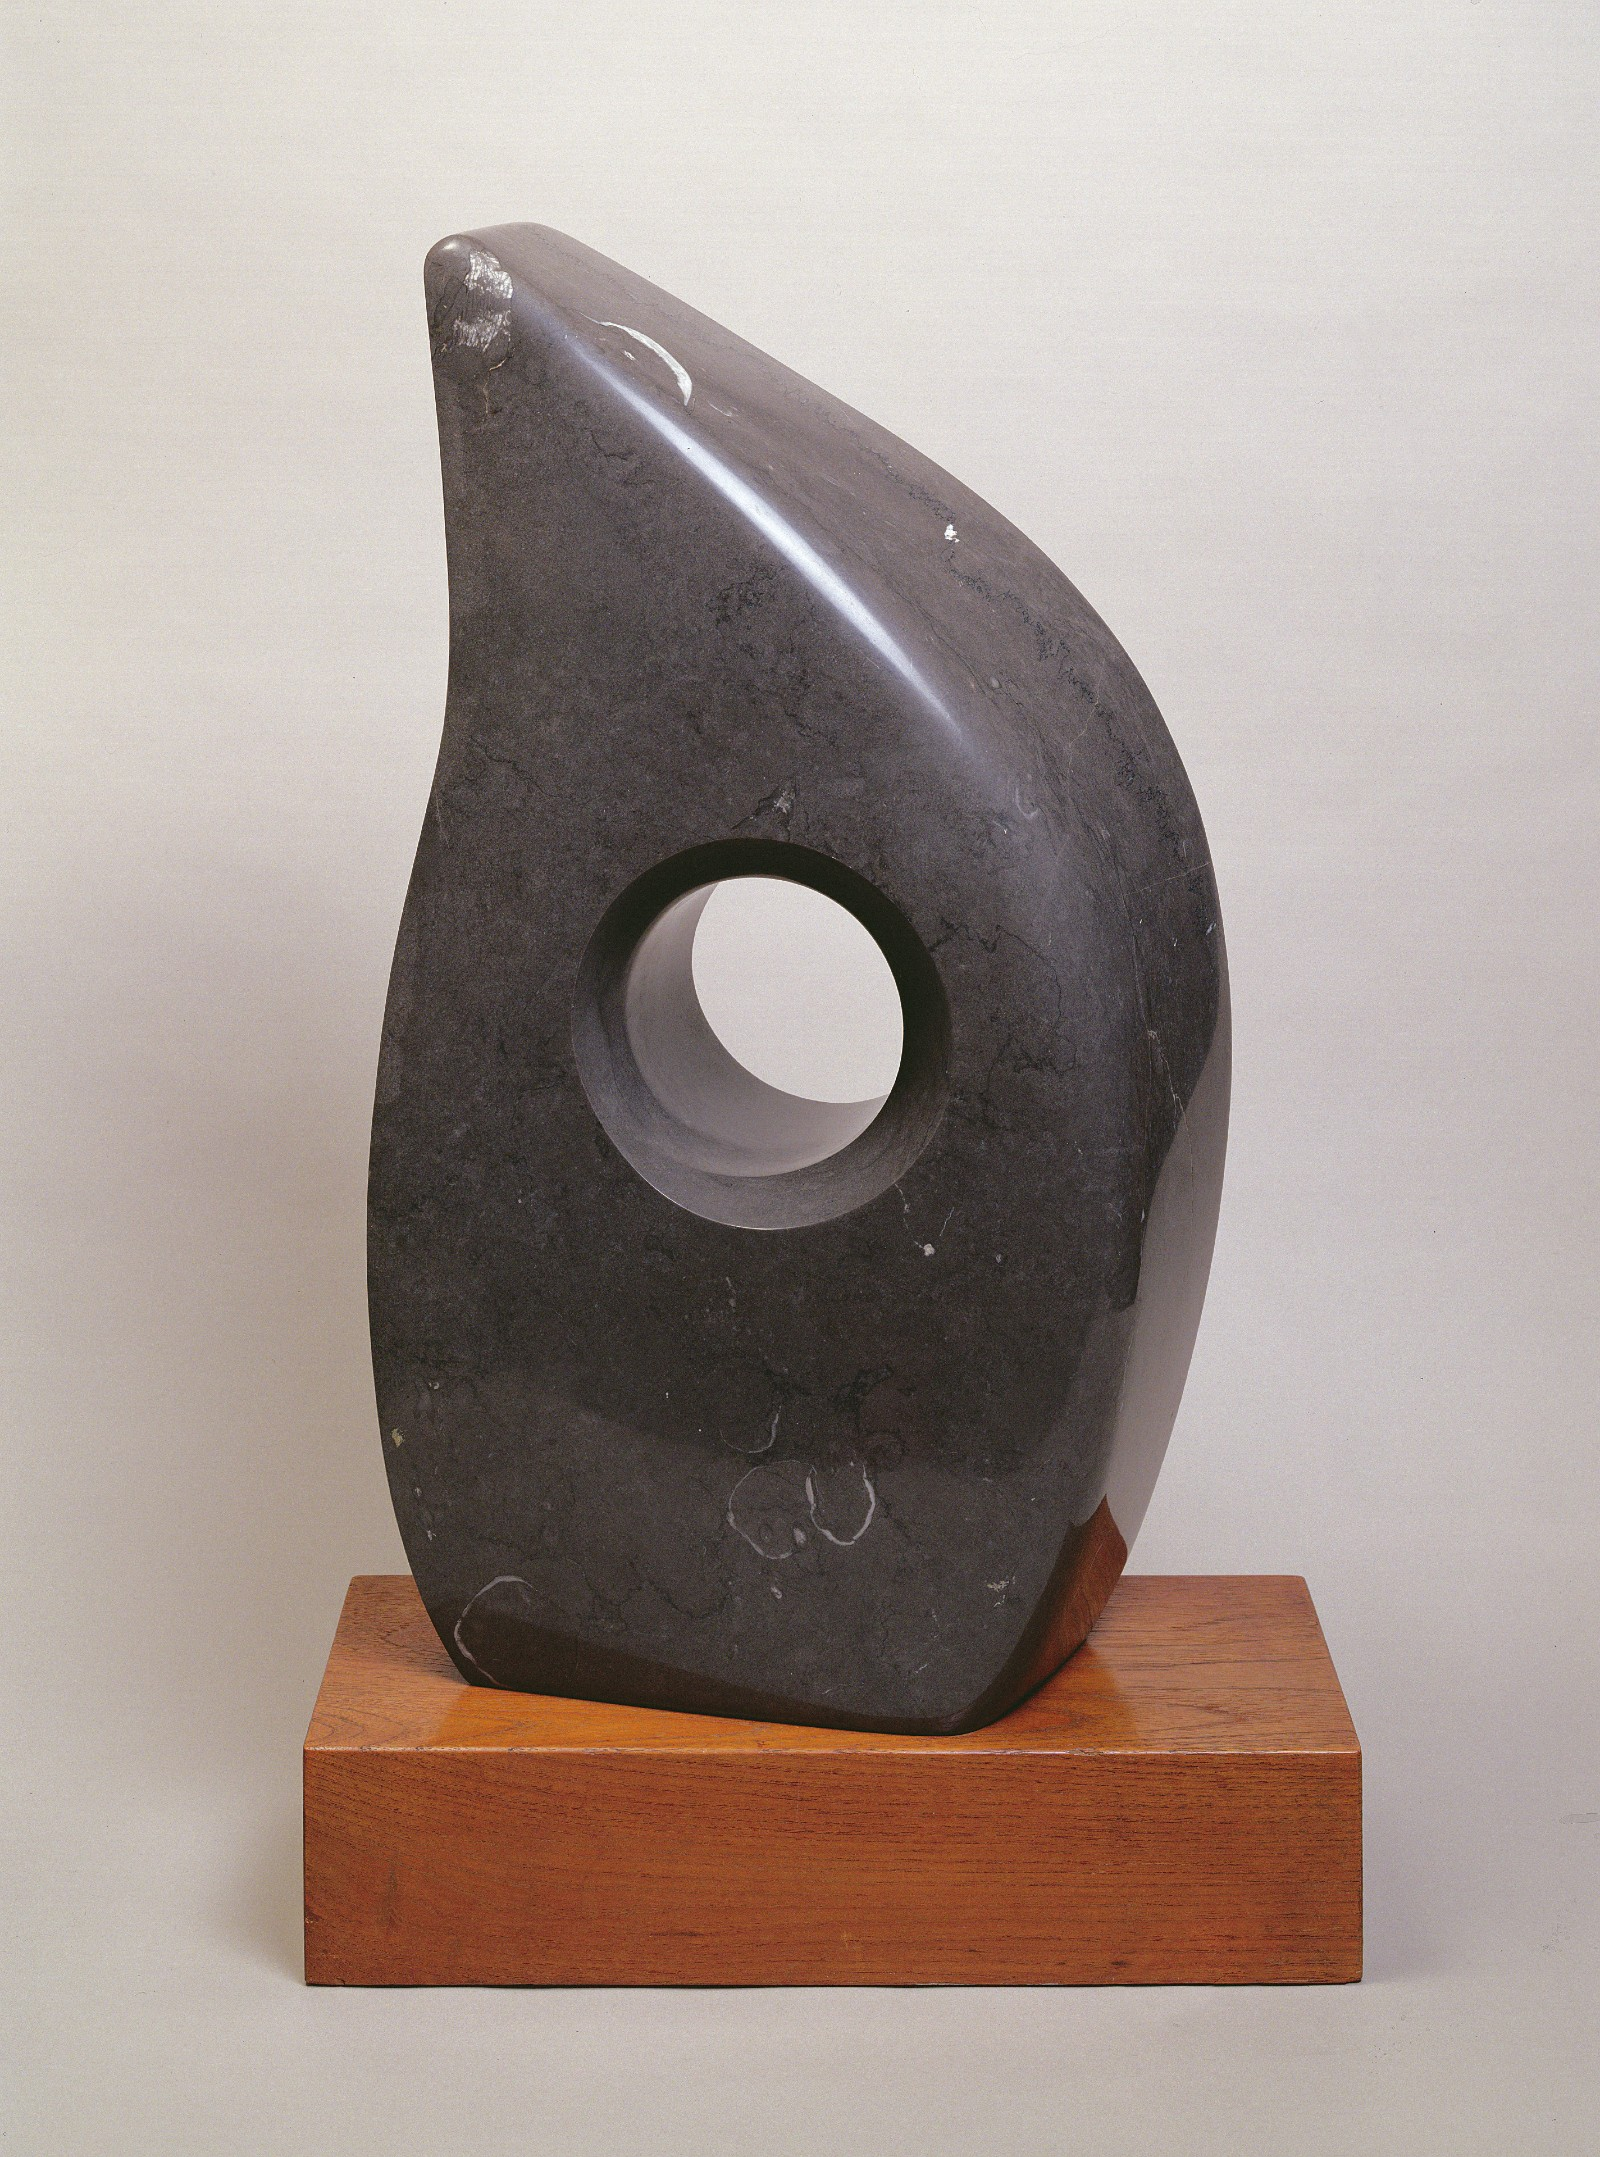 A black marble sculpture in the spae of a tear drop with a hole in its centre.